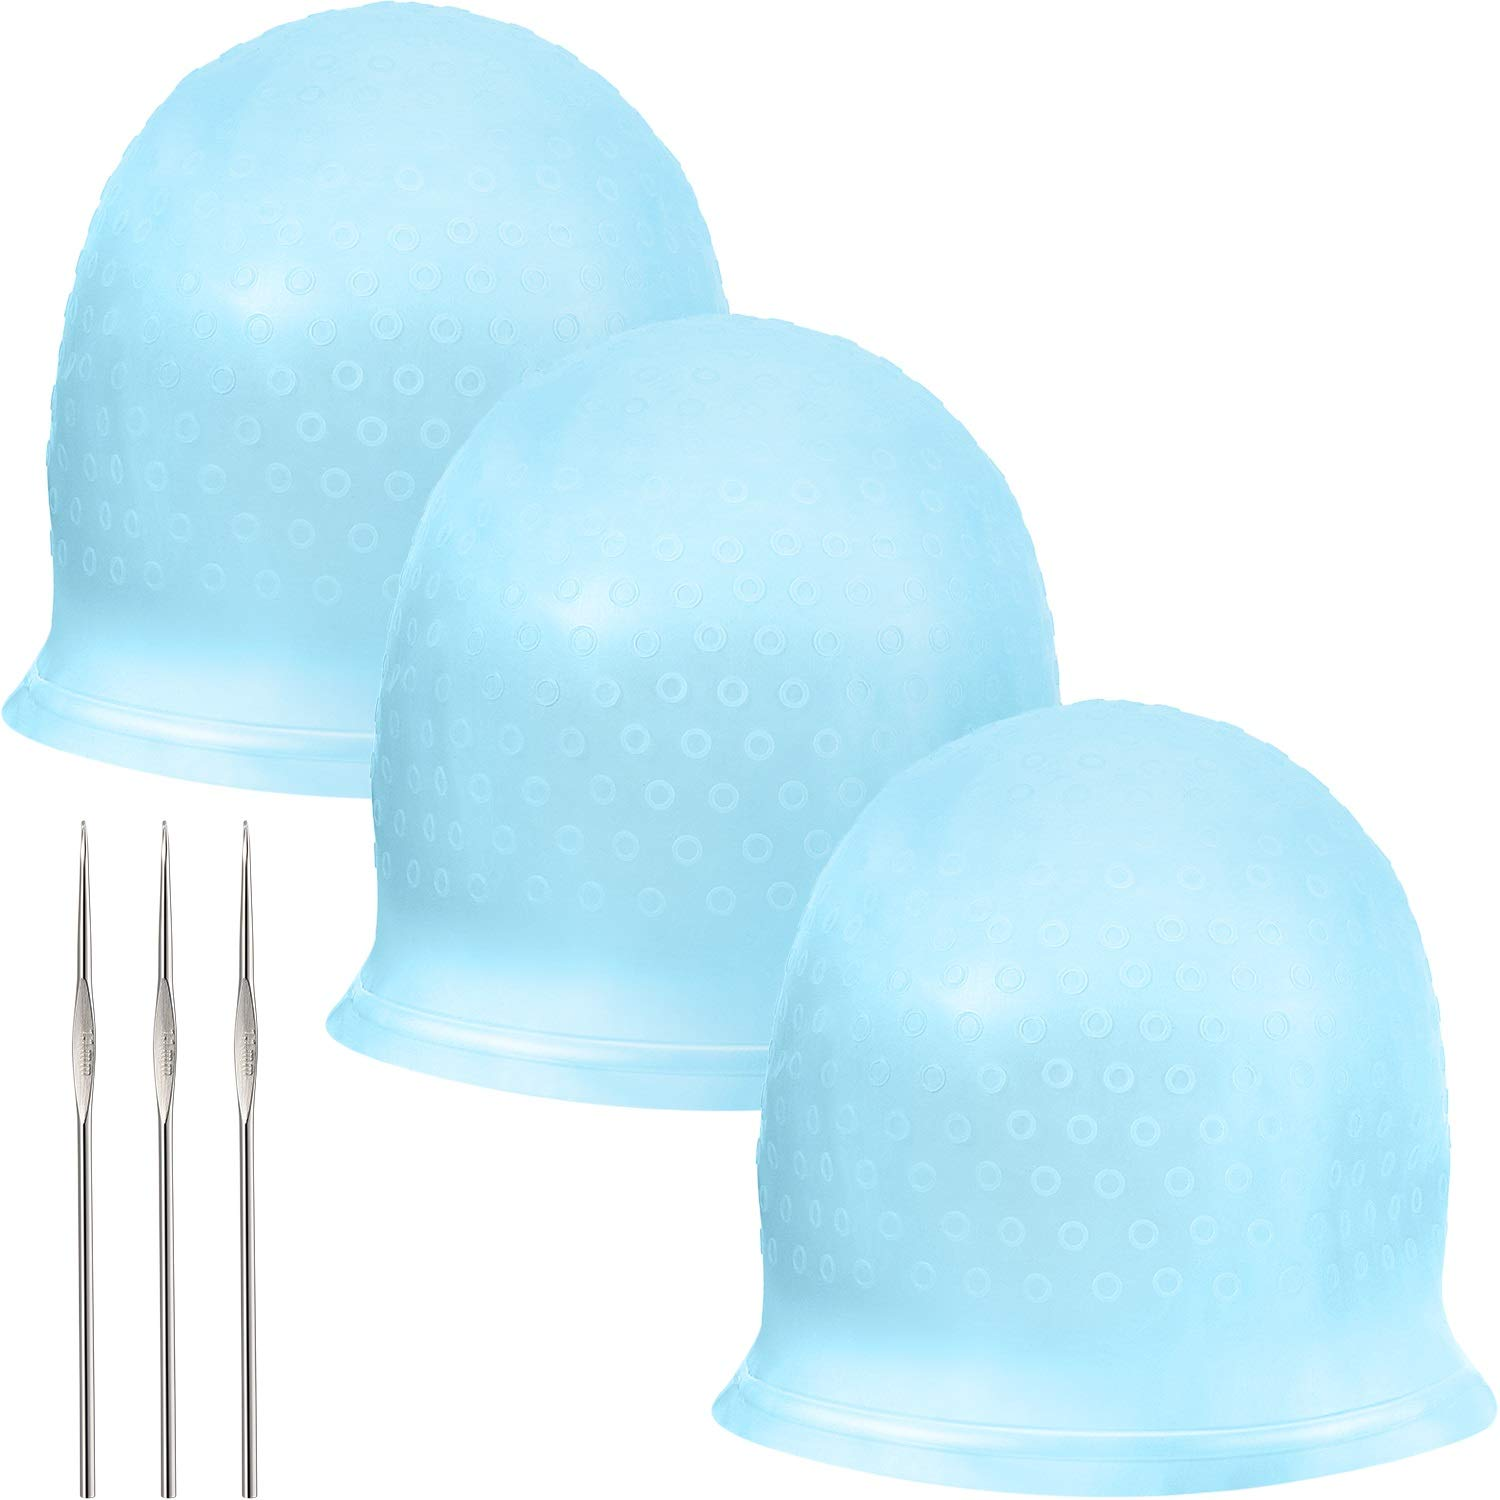 Silicone Highlight Cap Reusable Highlight Hair Cap Salon Hair Coloring Dye Cap with Hooks for Women Girls Dyeing Hair (3 Sets, Blue) by WILLBOND